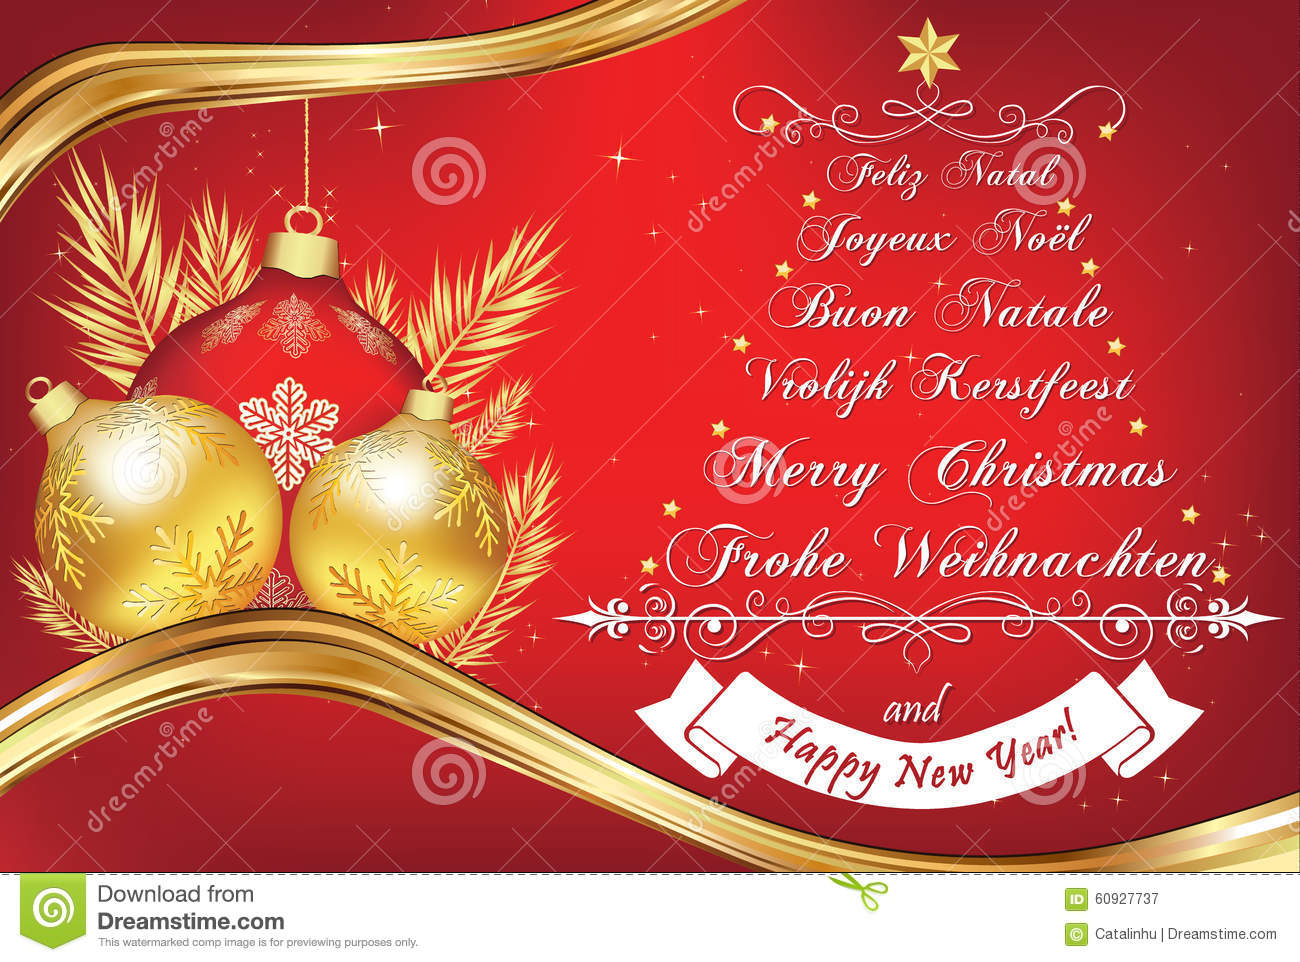 Business new year greeting card in many languages stock vector business new year greeting card in many languages m4hsunfo Gallery